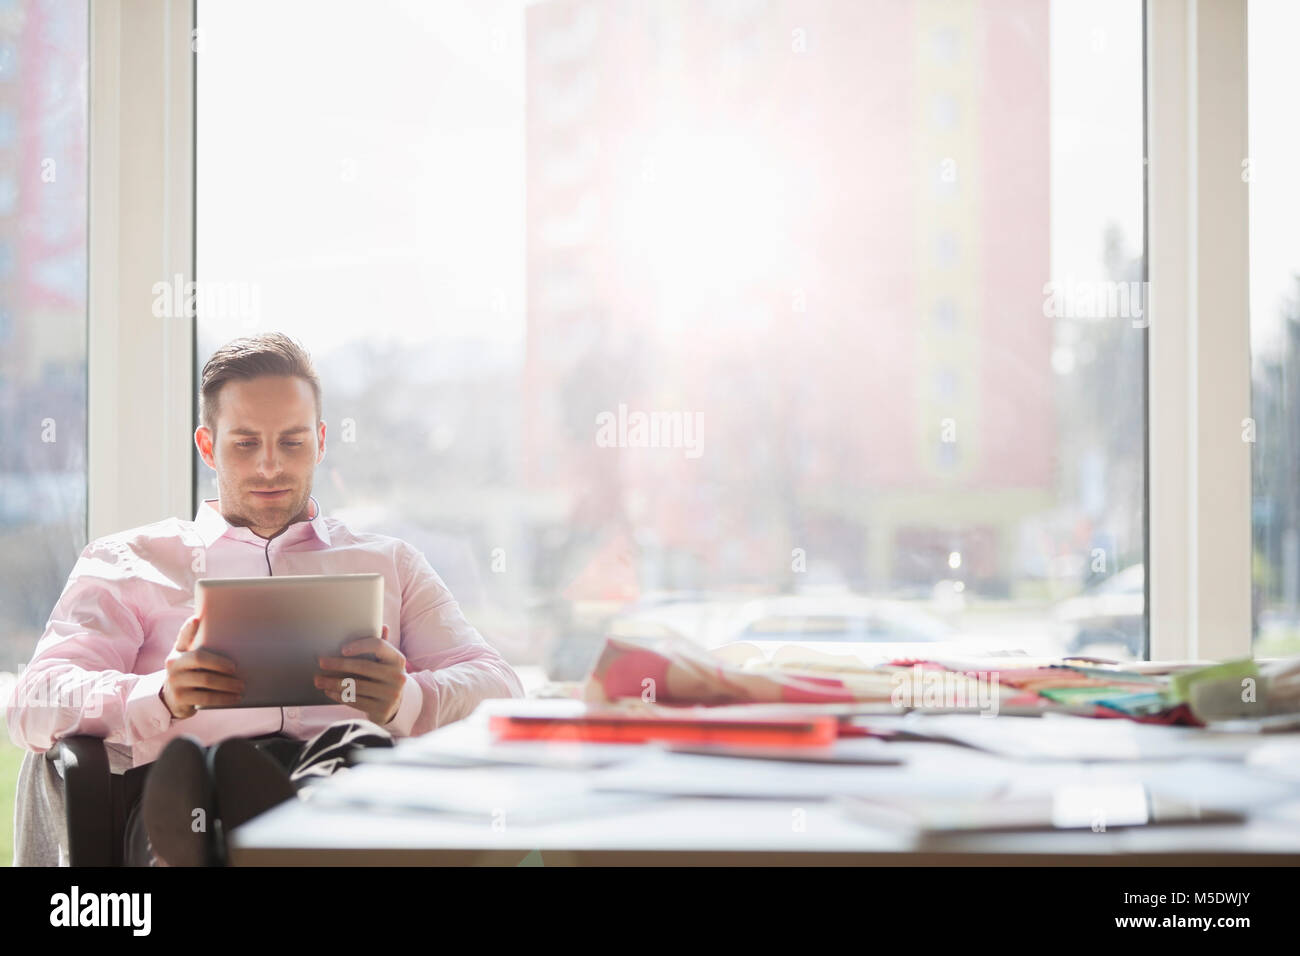 Young businessman using digital tablet at conference table in creative office Photo Stock